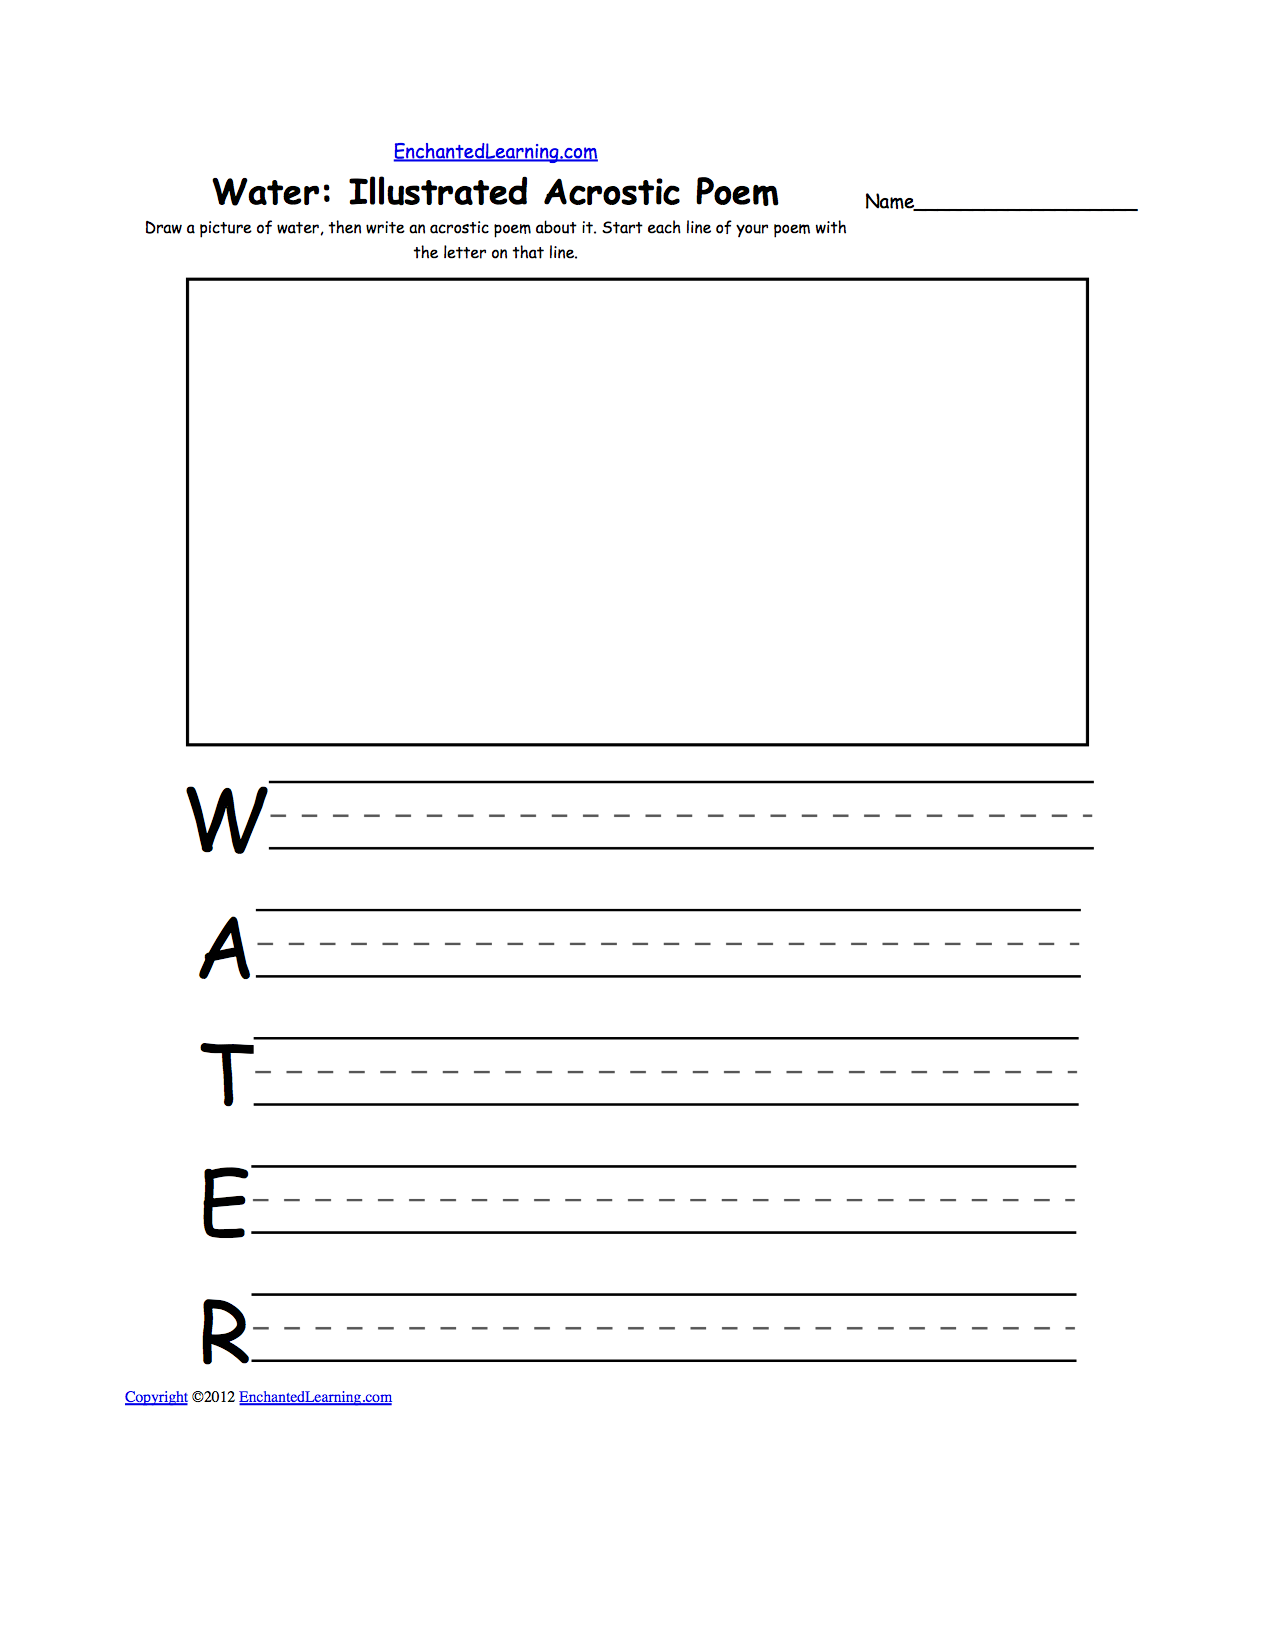 water related activities at enchantedlearning com draw a picture of water then write an acrostic poem about it start each line of your poem the letter on that line